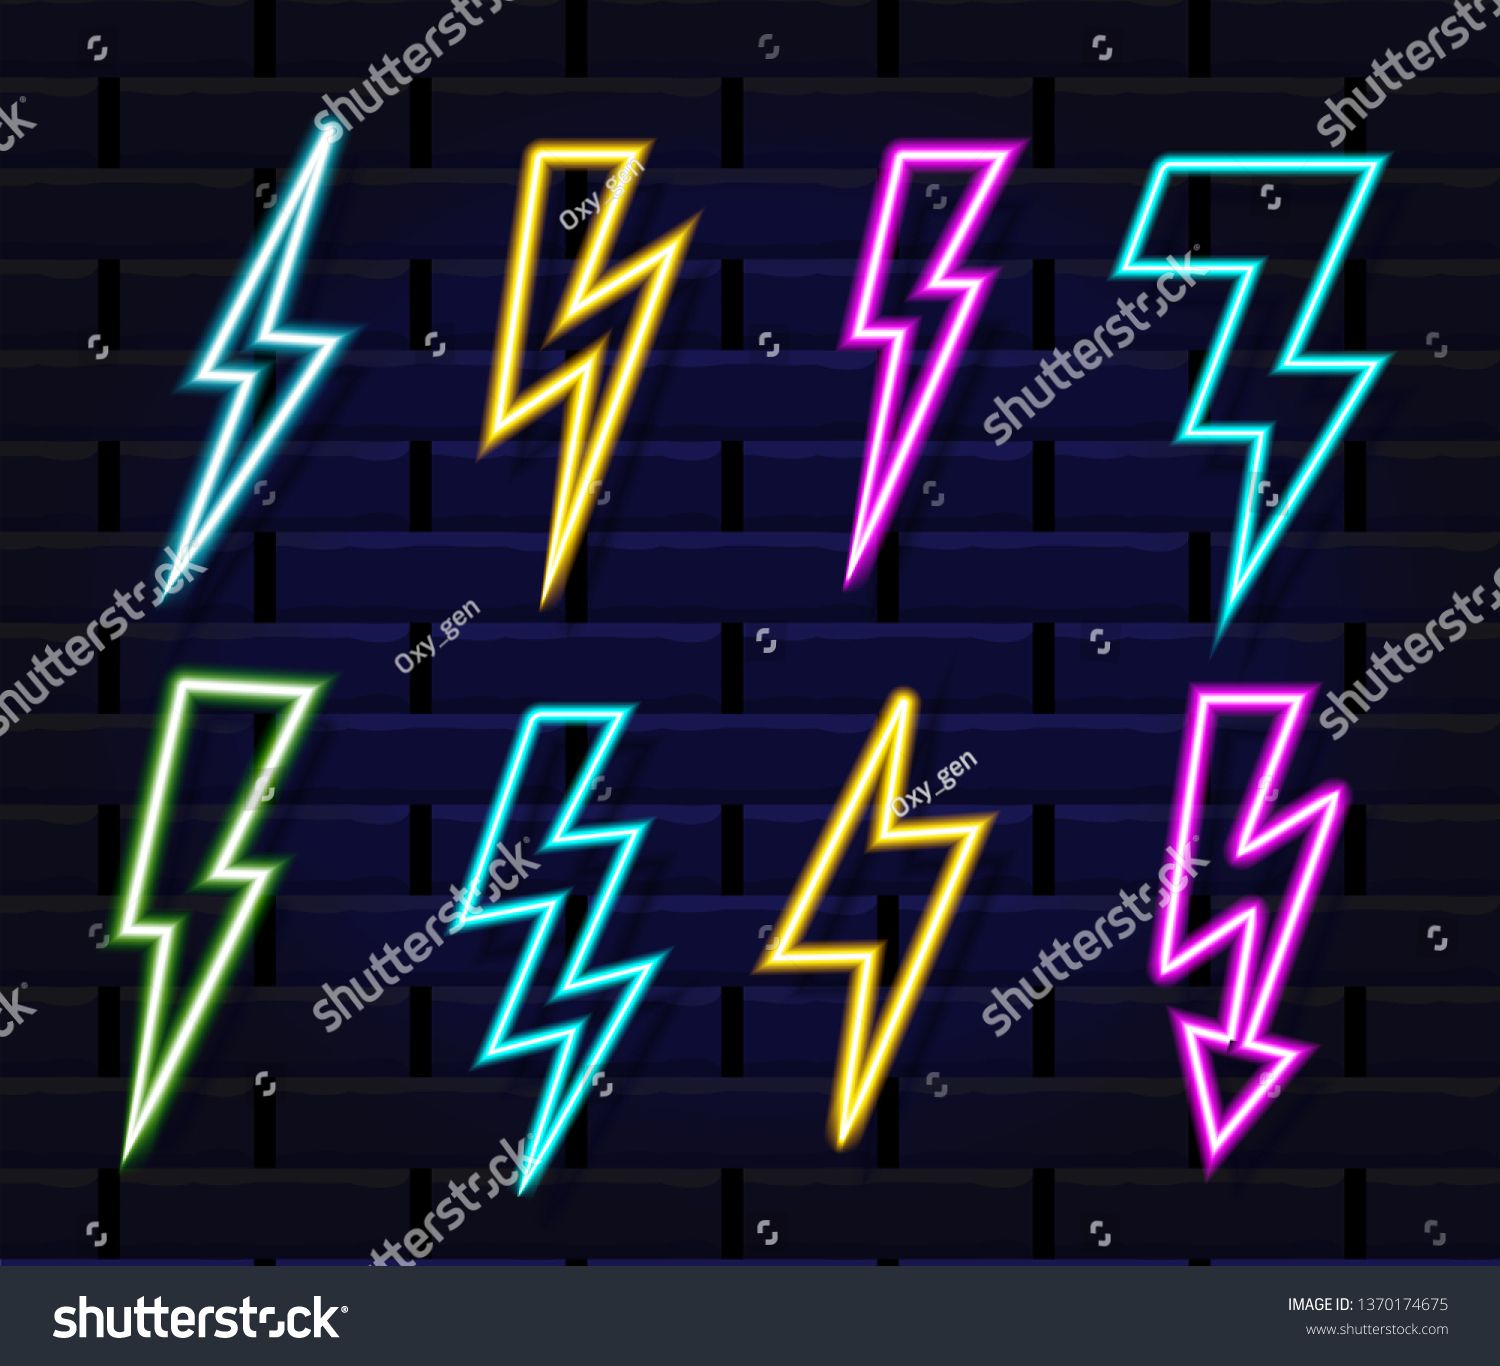 Neon Lightning Sign Glowing Electricity Power Symbol Electric Spark Vector Colored Lightning Set Isolat Unicorn Wallpaper Power Symbol Graphic Illustration